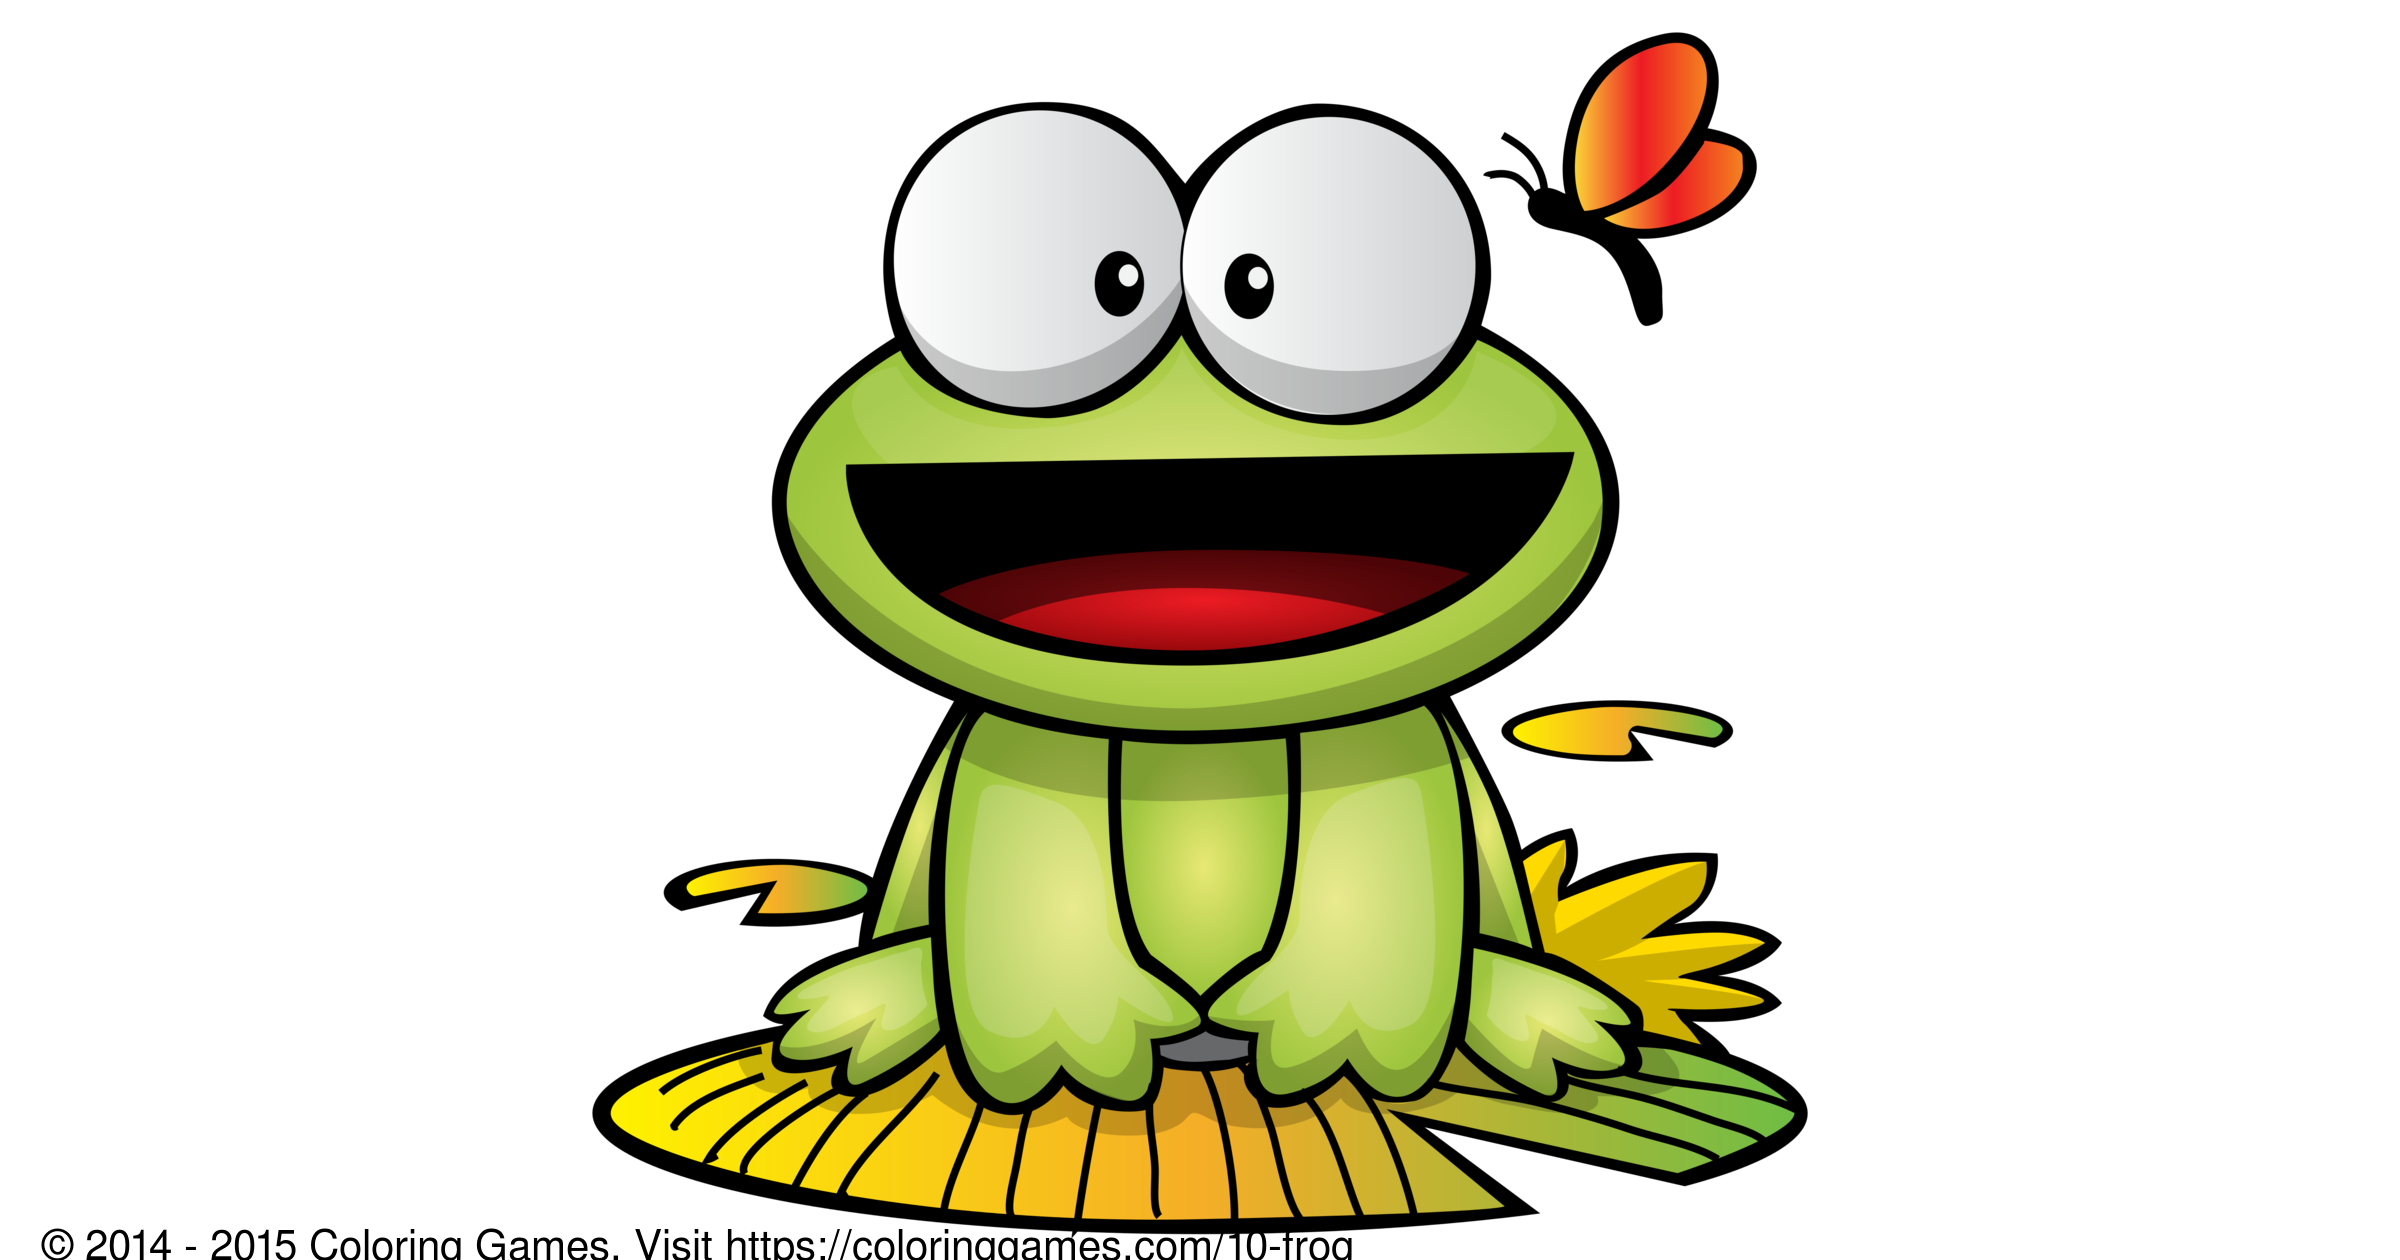 Frog - Coloring Games and Coloring Pages